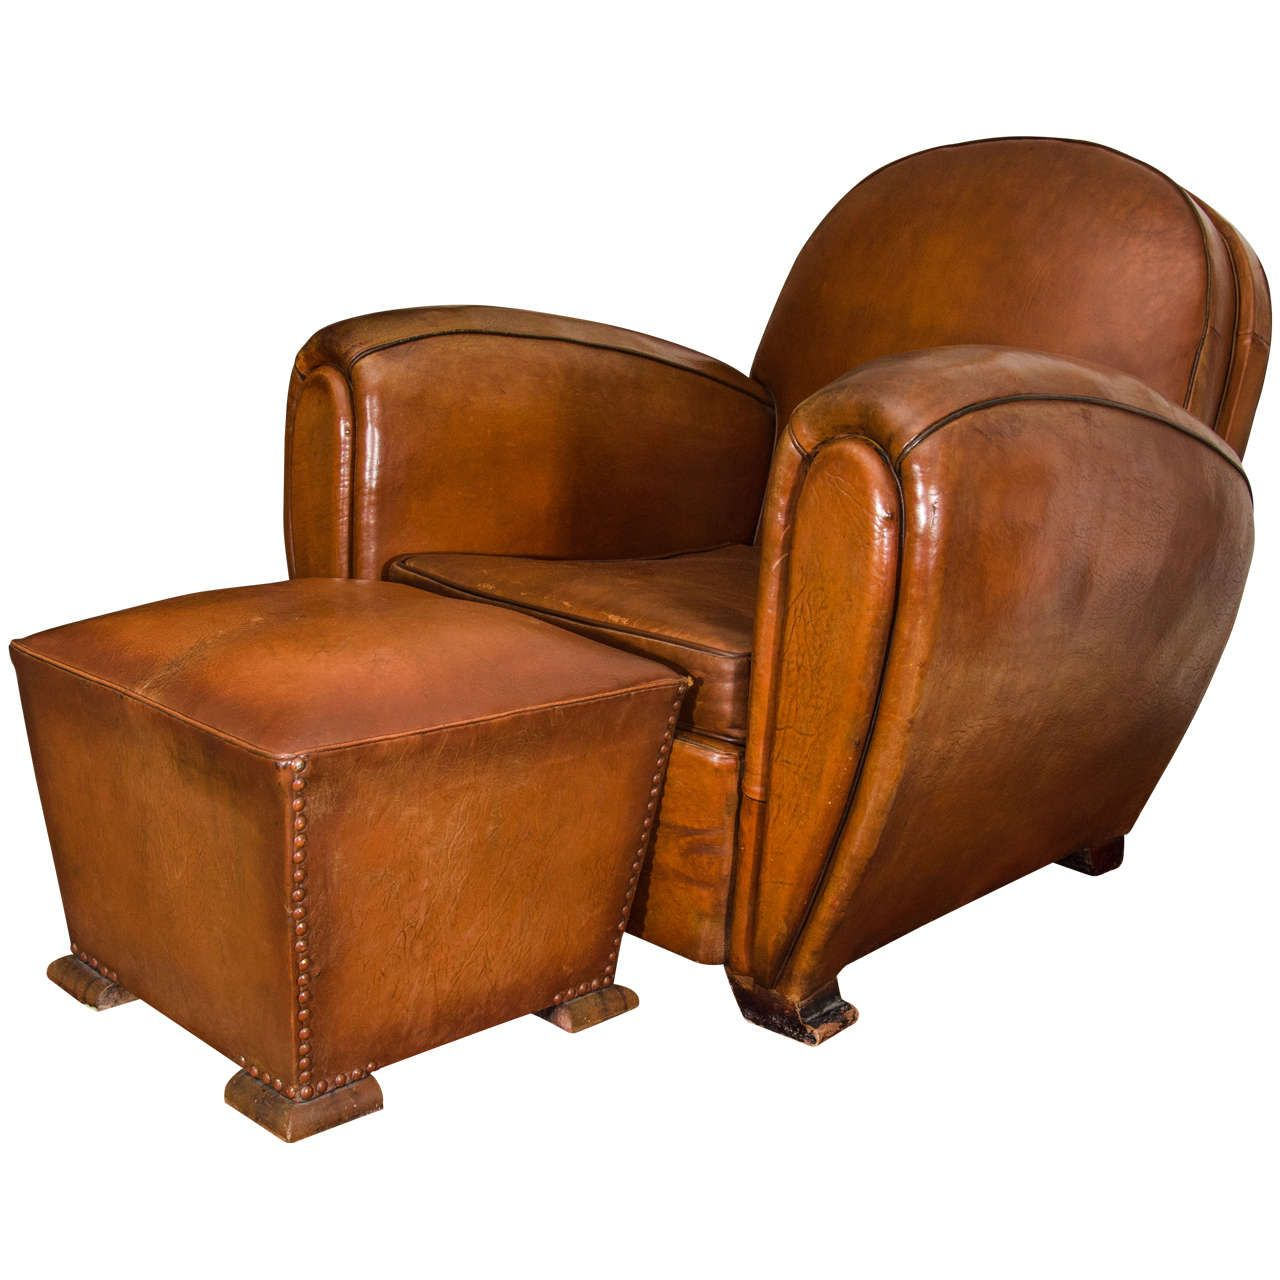 french round back leather club chairs - Club Chair